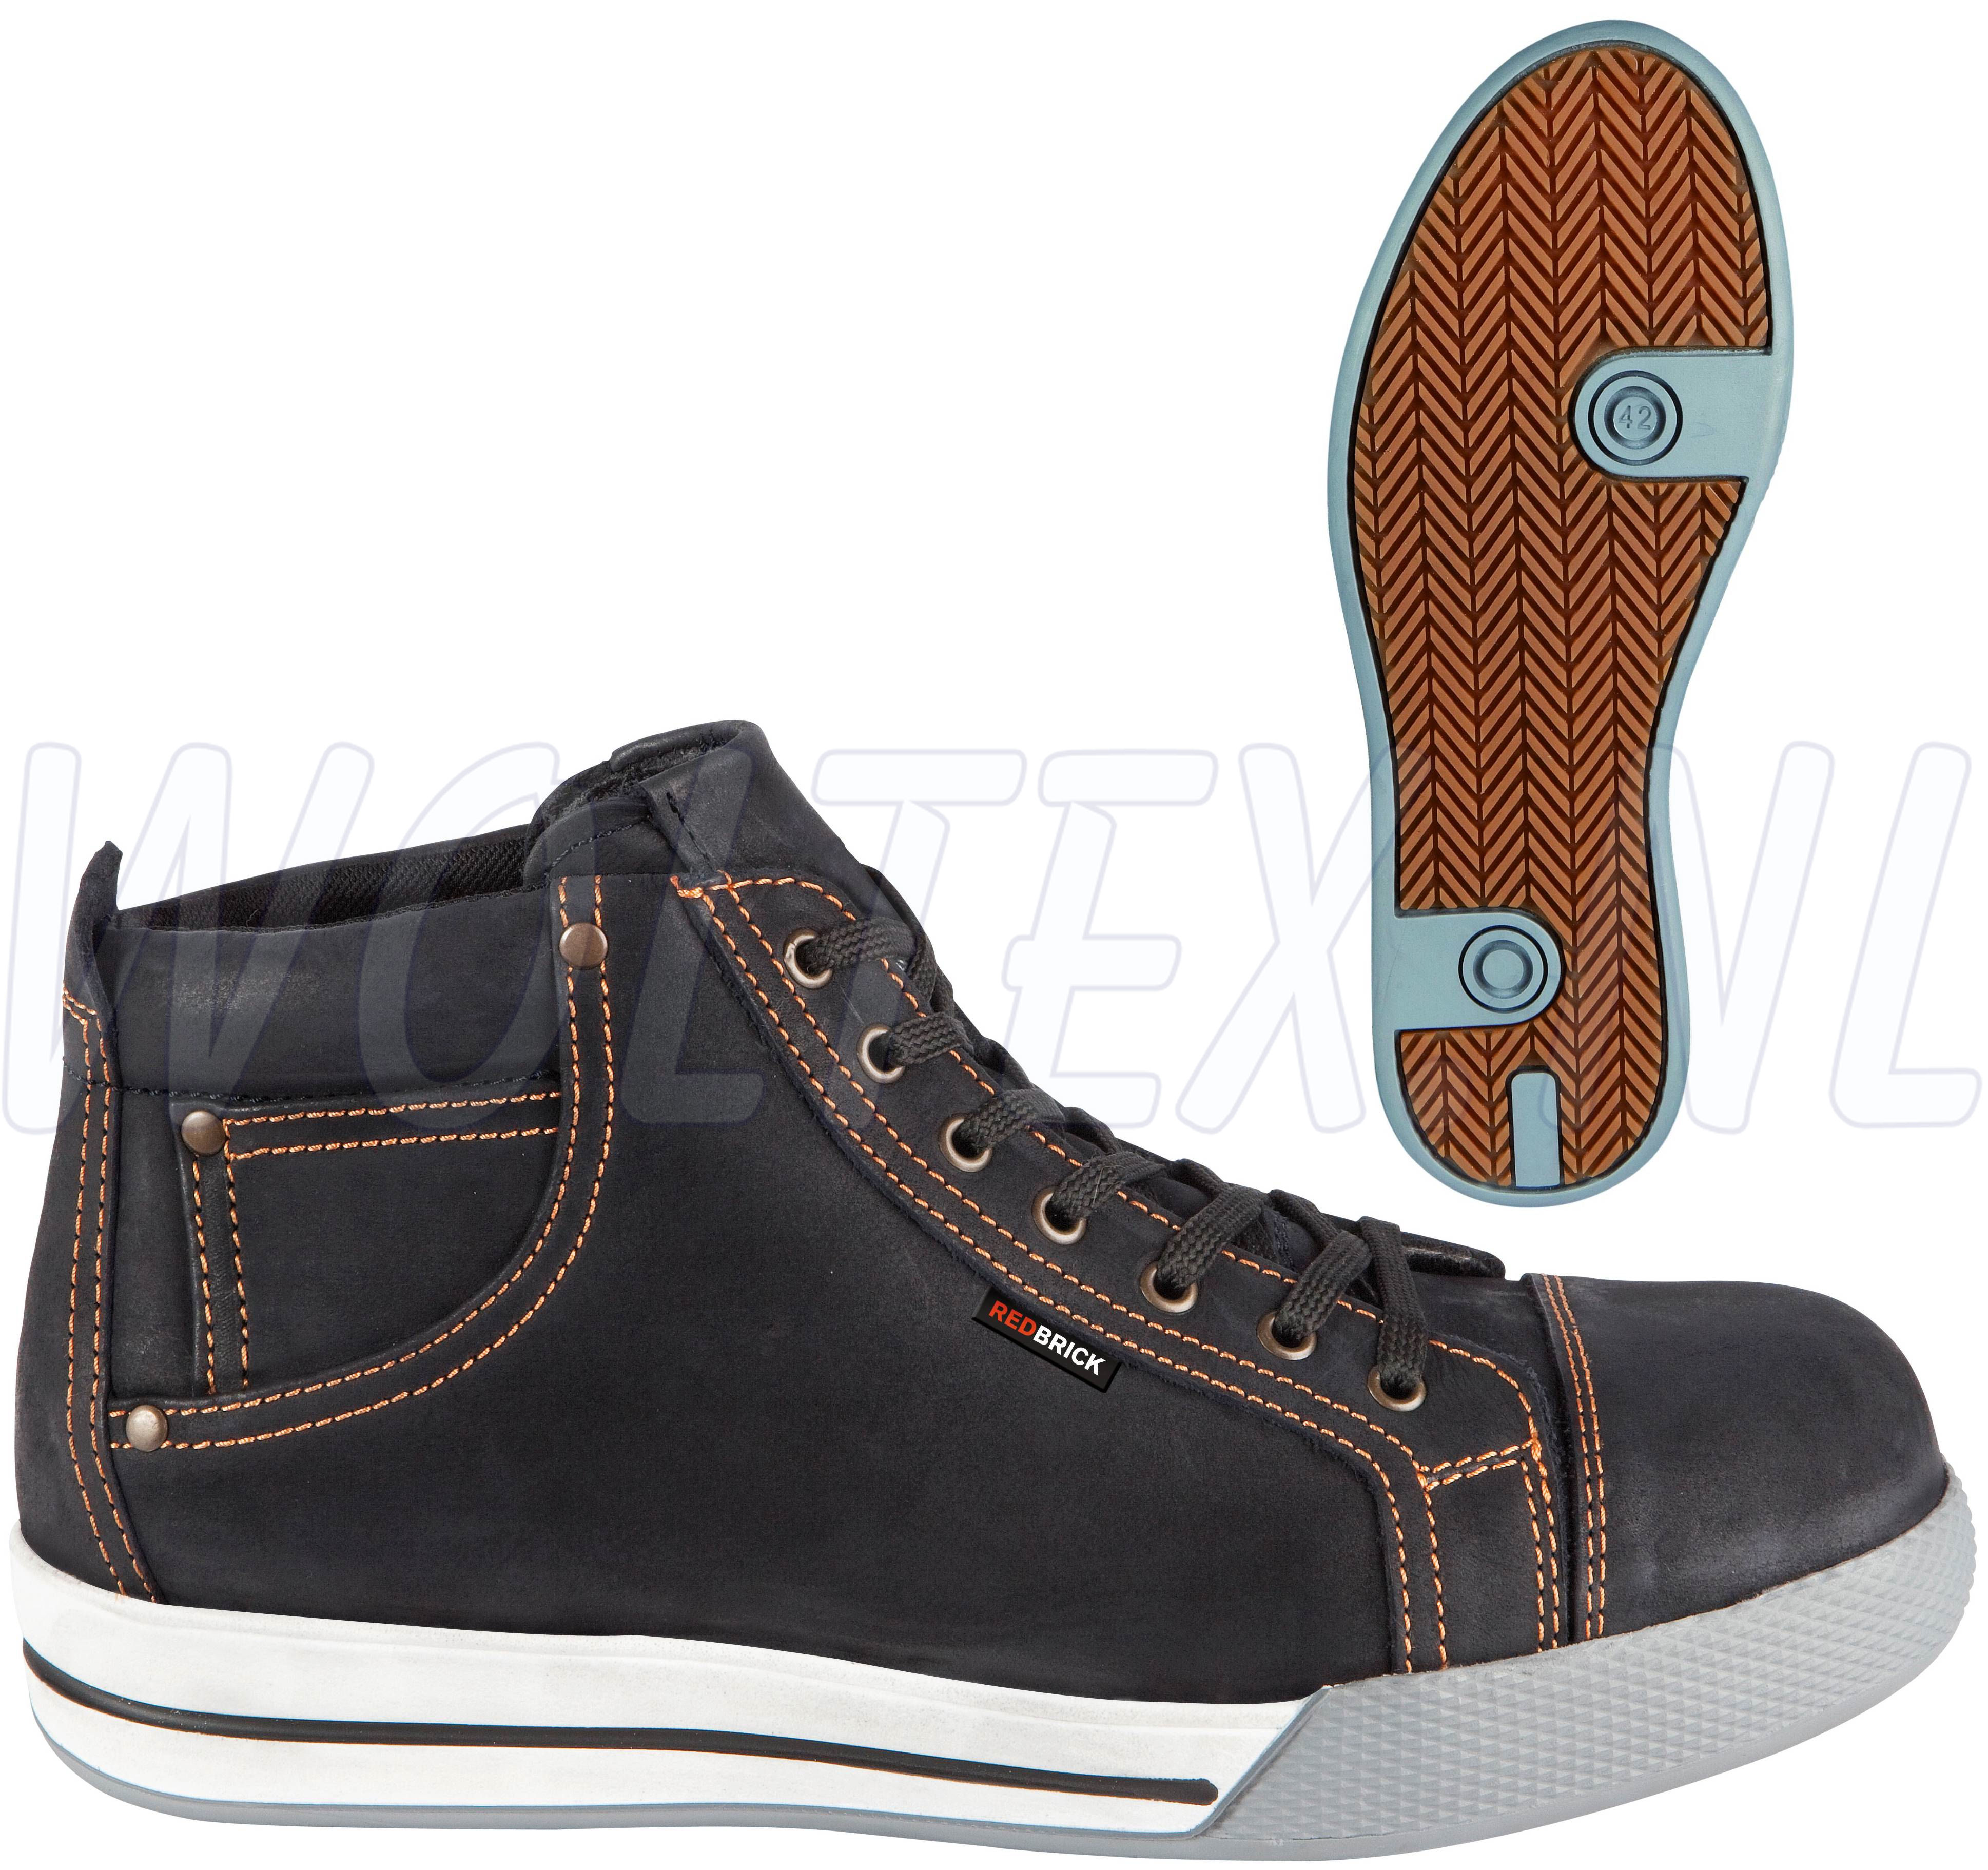 Redbrick Werkschoenen.Safety Sneakers By Redbrick The New Trend In Safety Shoes Home